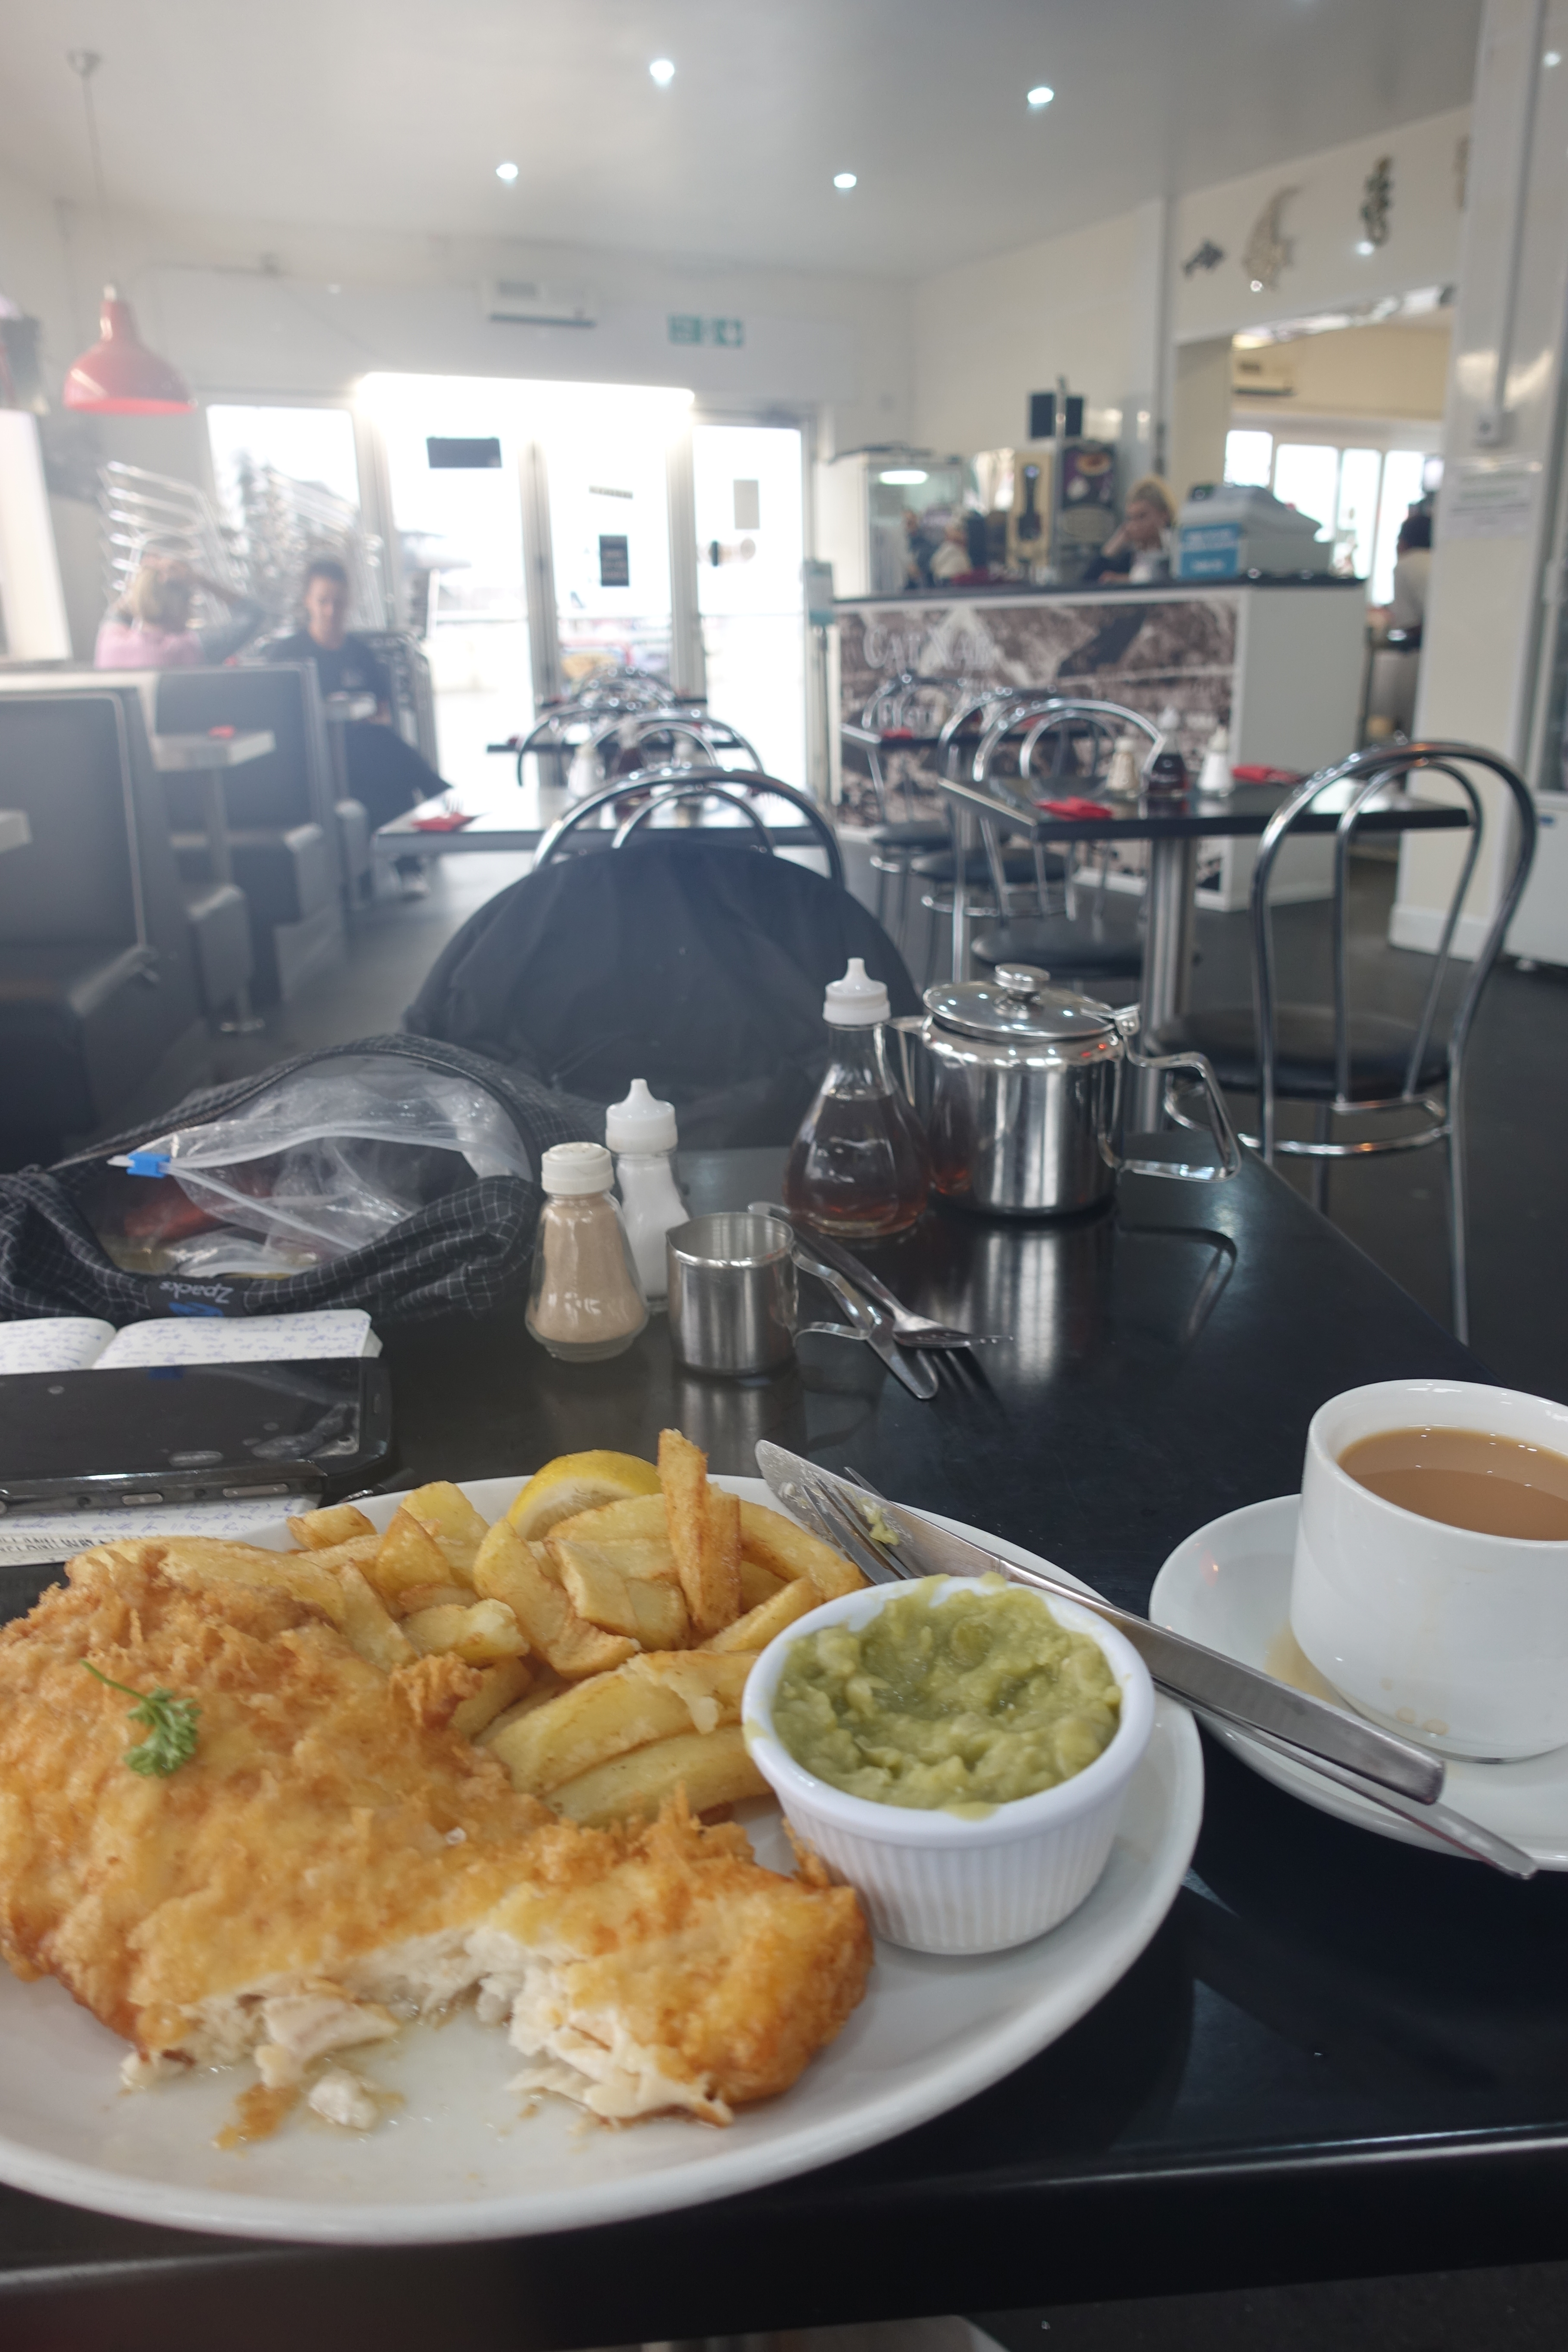 Excellent haddock and chips are to be had in Saltburn-by-the-Sea